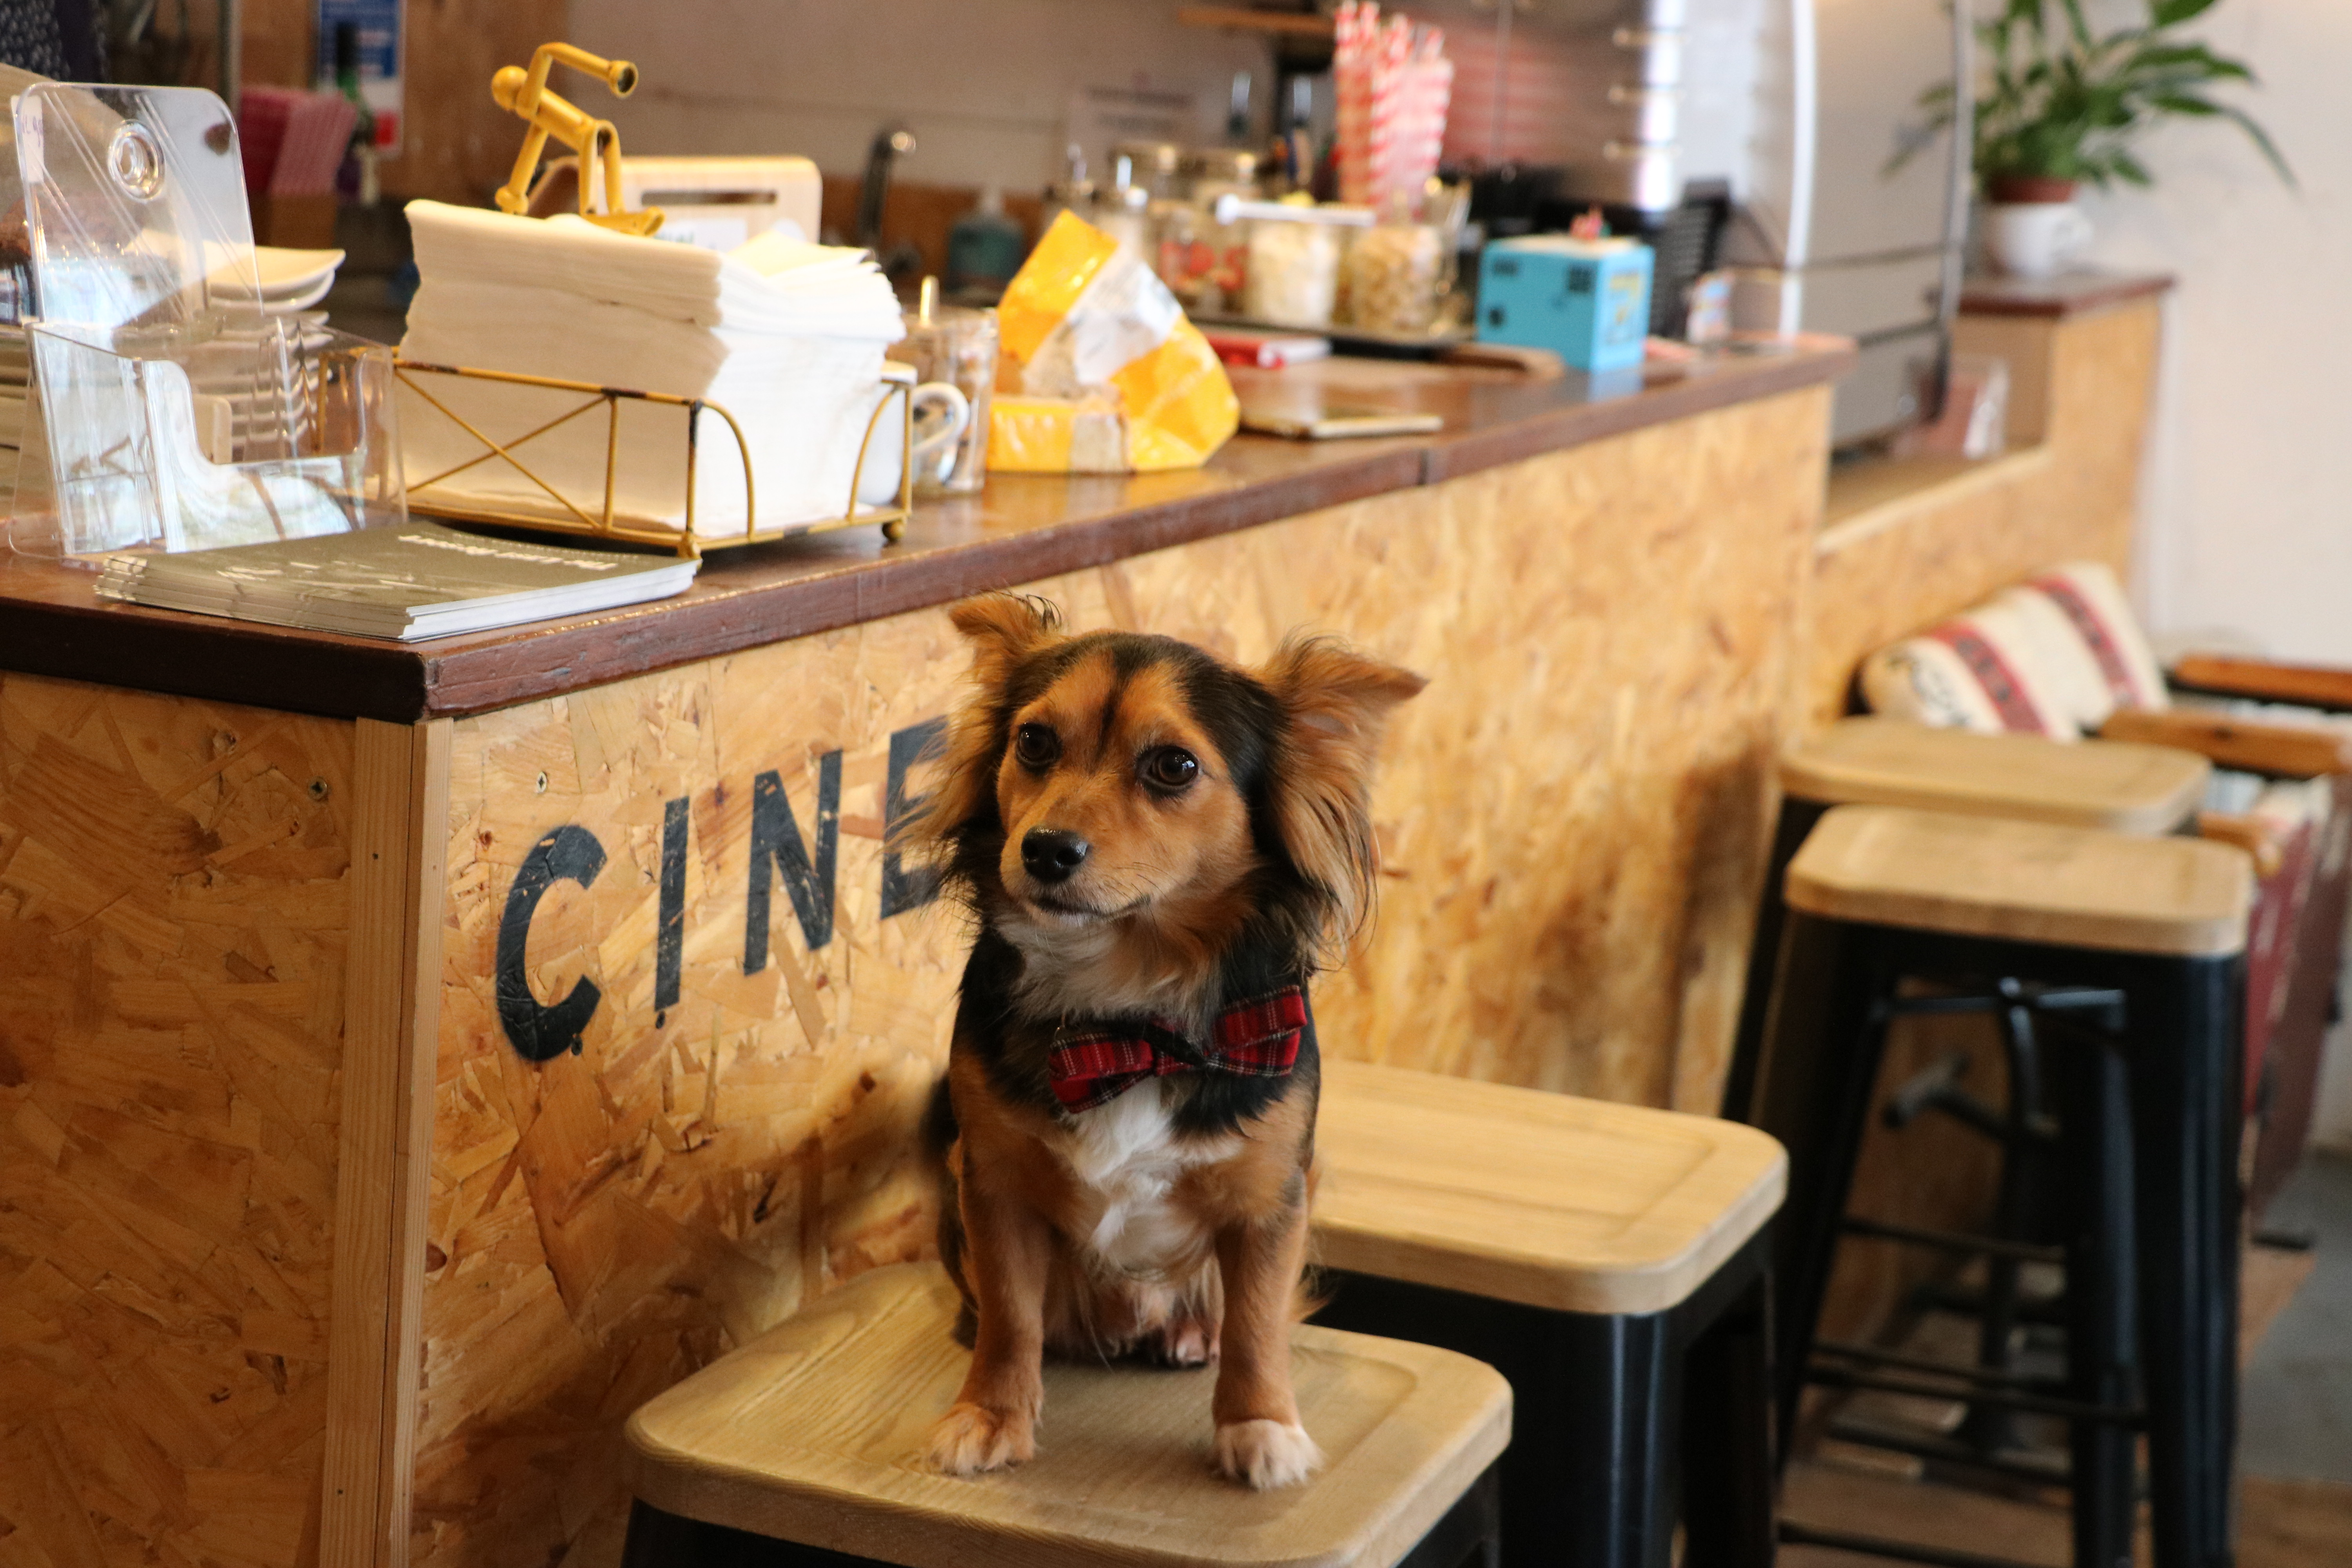 Wales' First Dog Friendly Cinema is Coming to Swansea